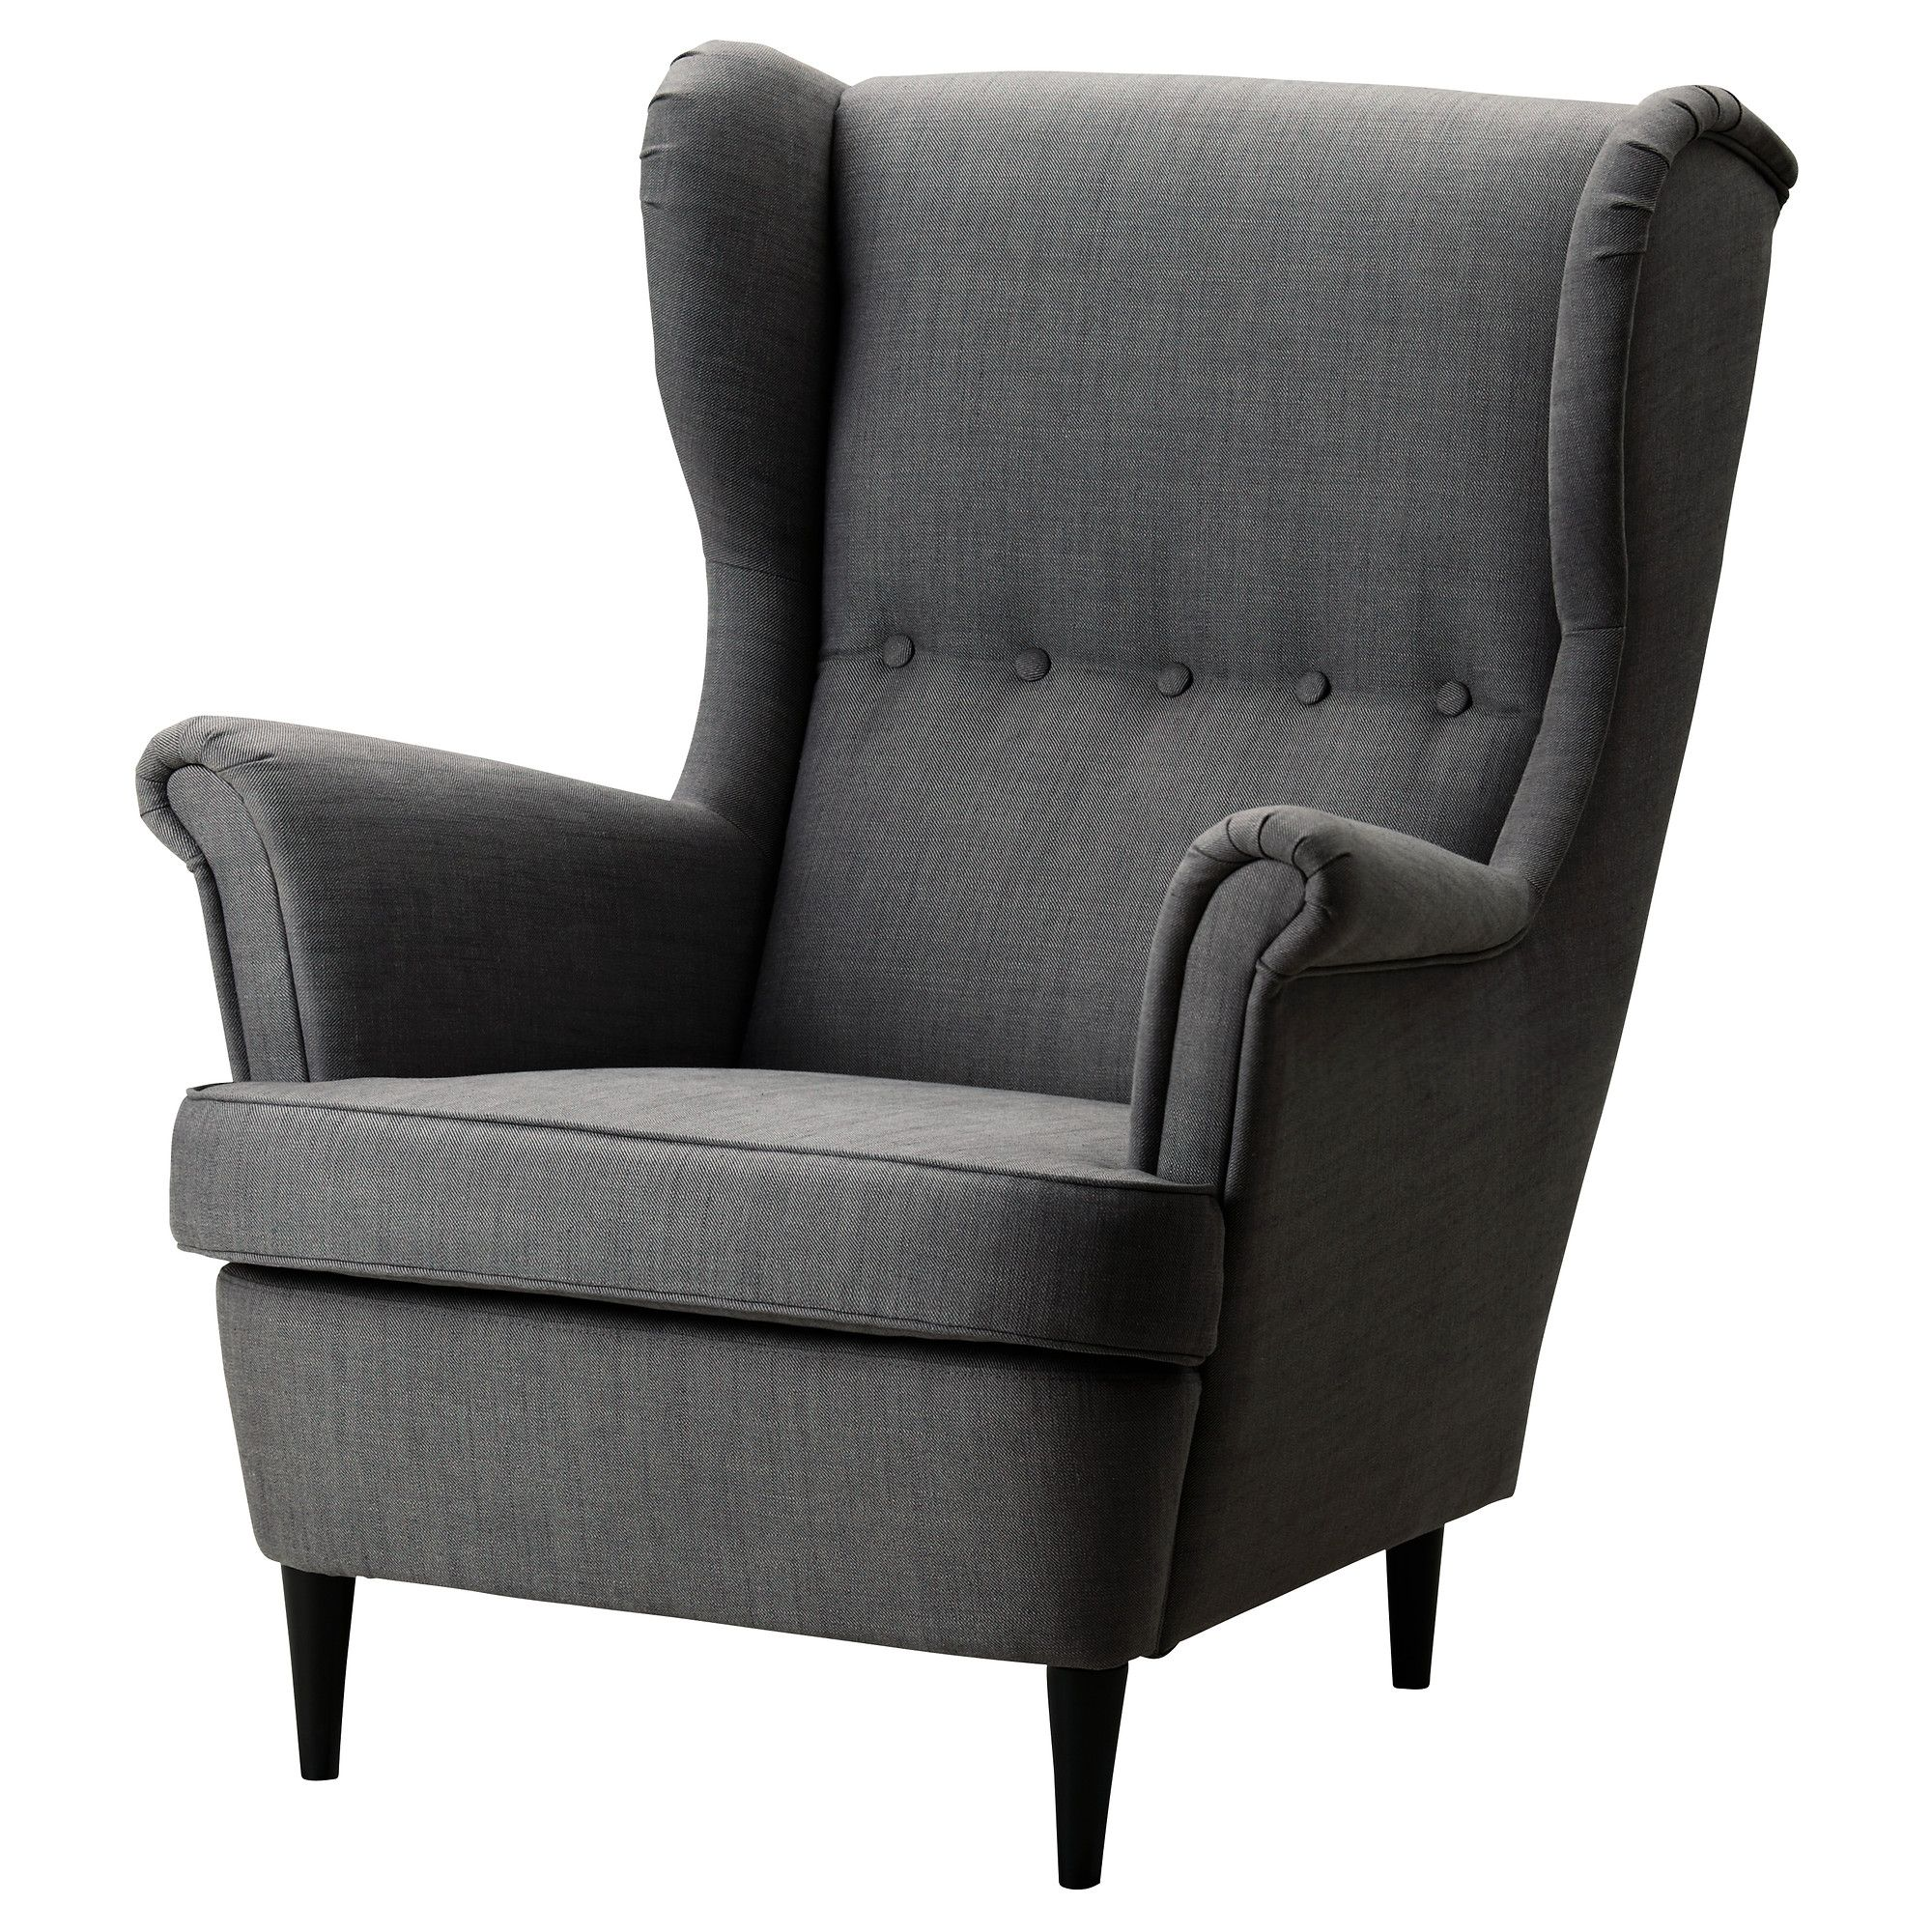 strandmon wing chair svanby gray ikea ikea shopping list. Black Bedroom Furniture Sets. Home Design Ideas